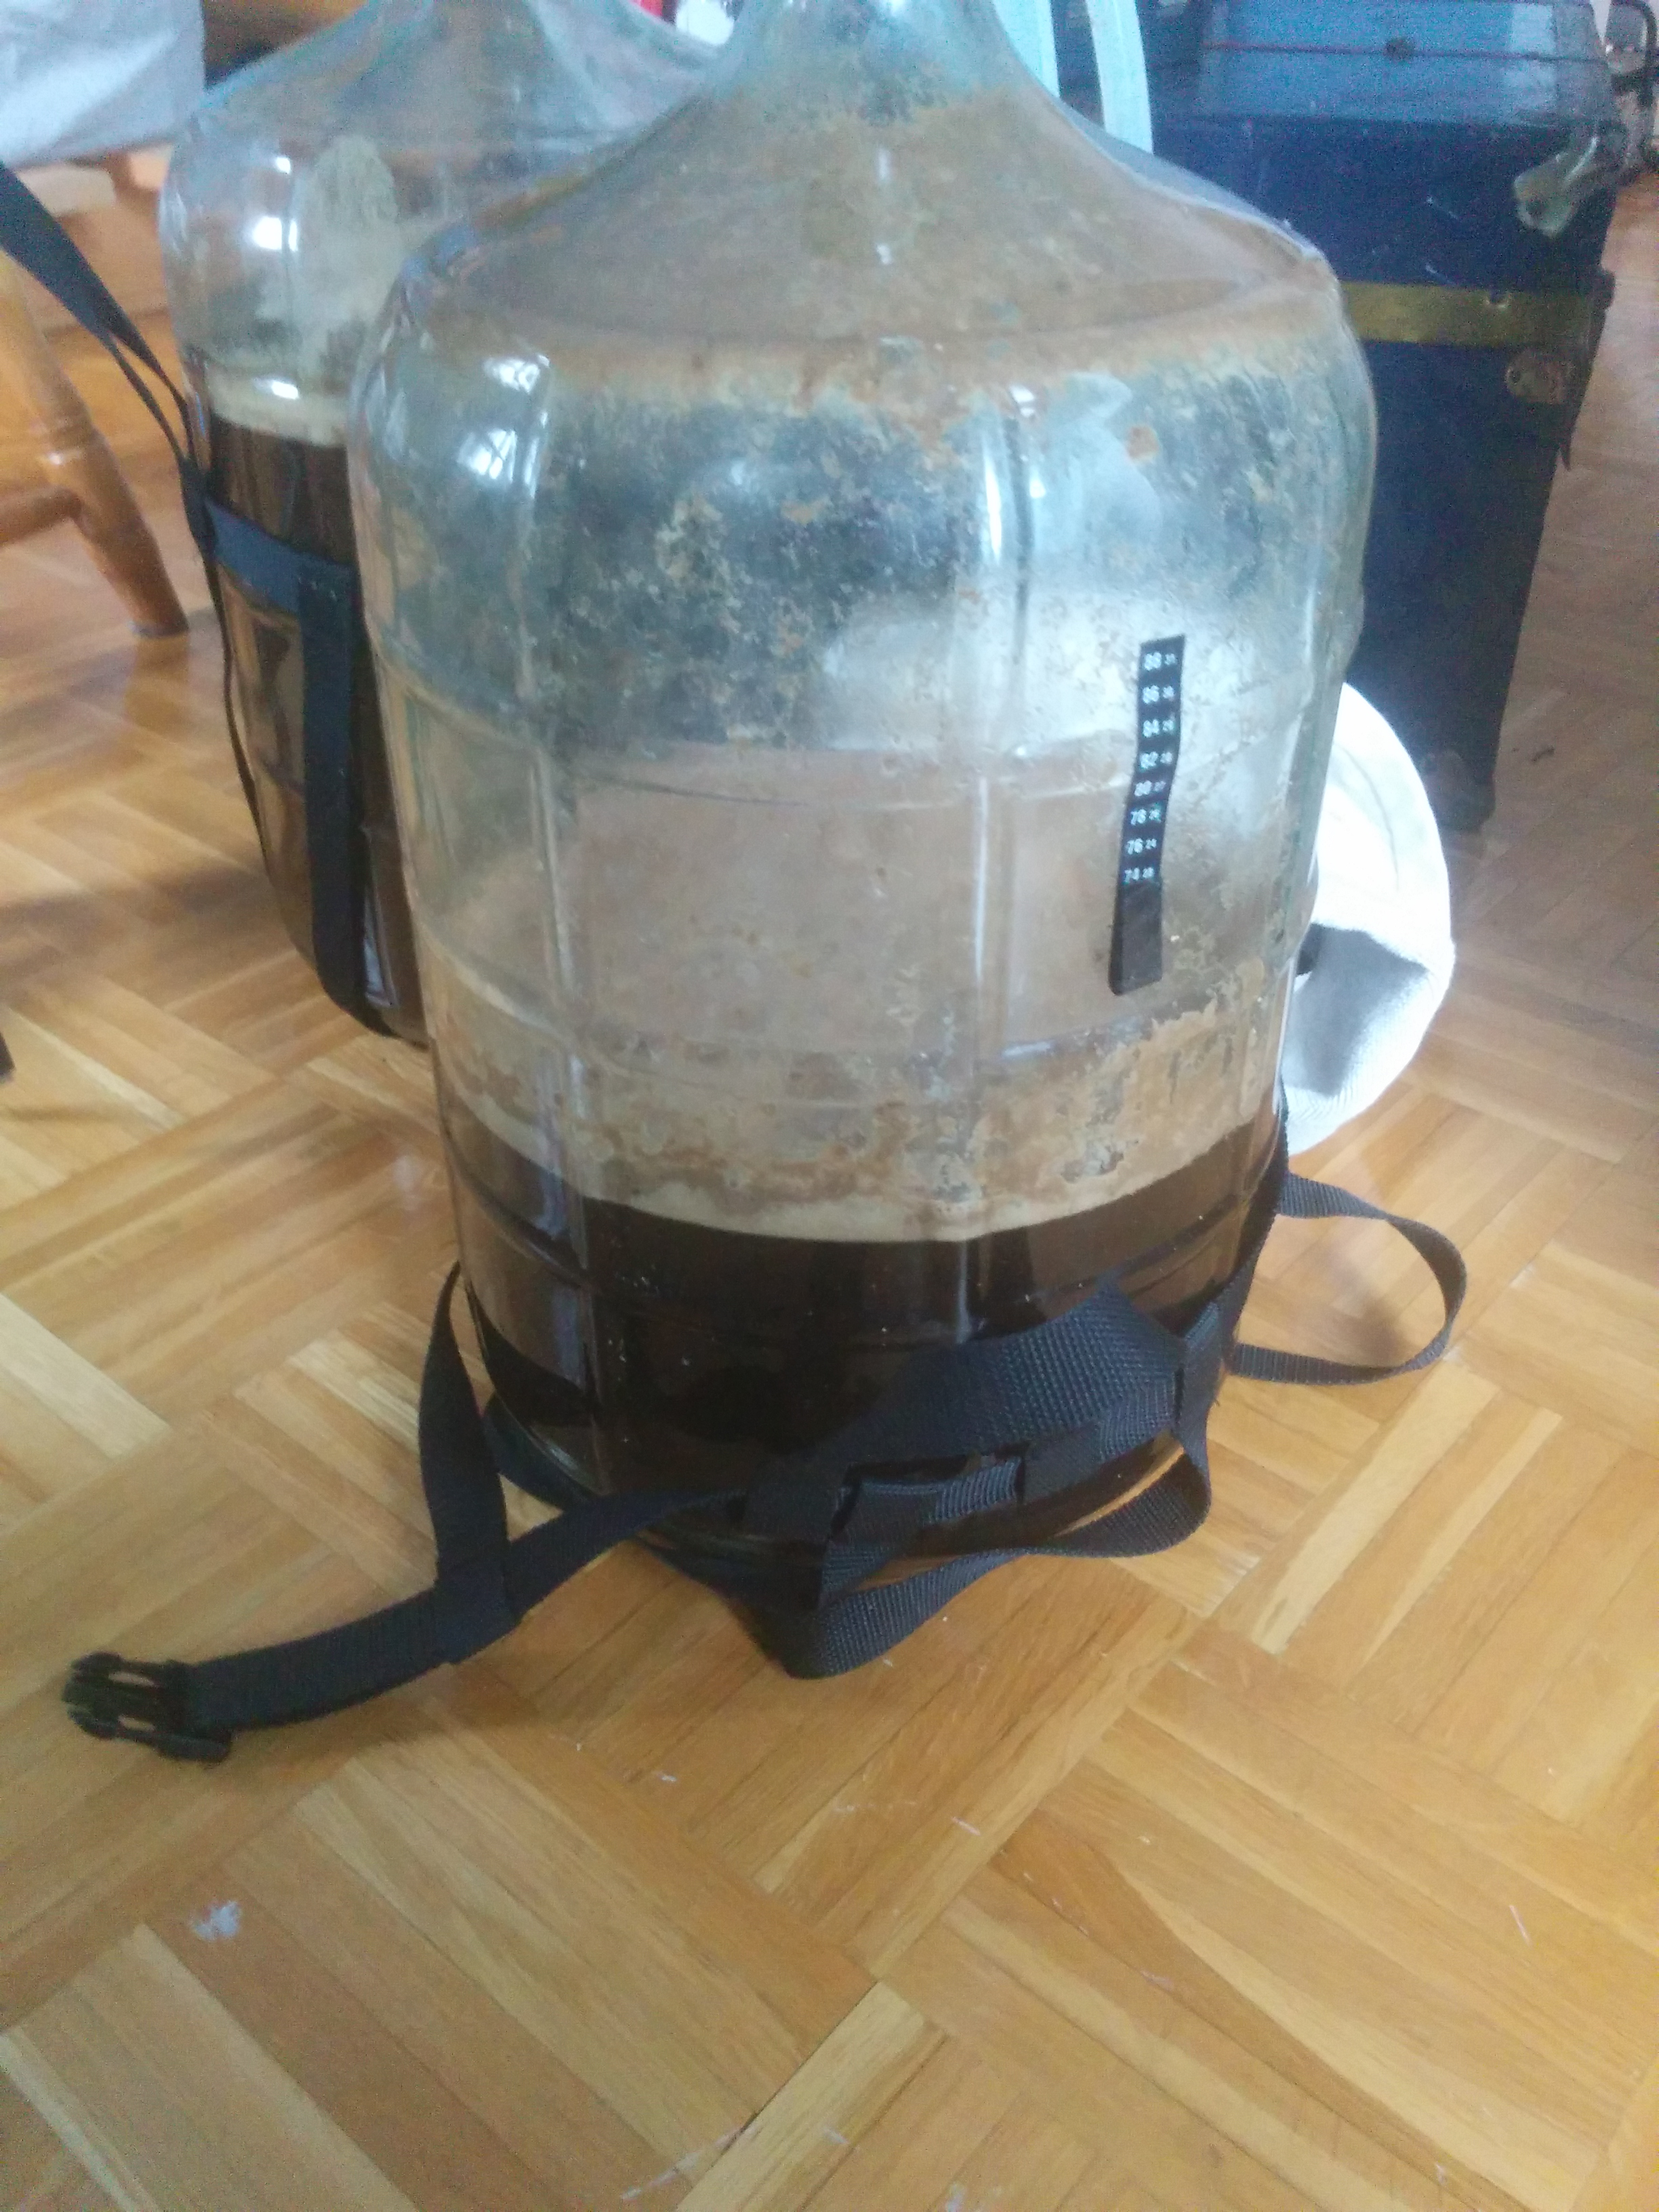 This carboy was full to the brim prior to the beerxplosion